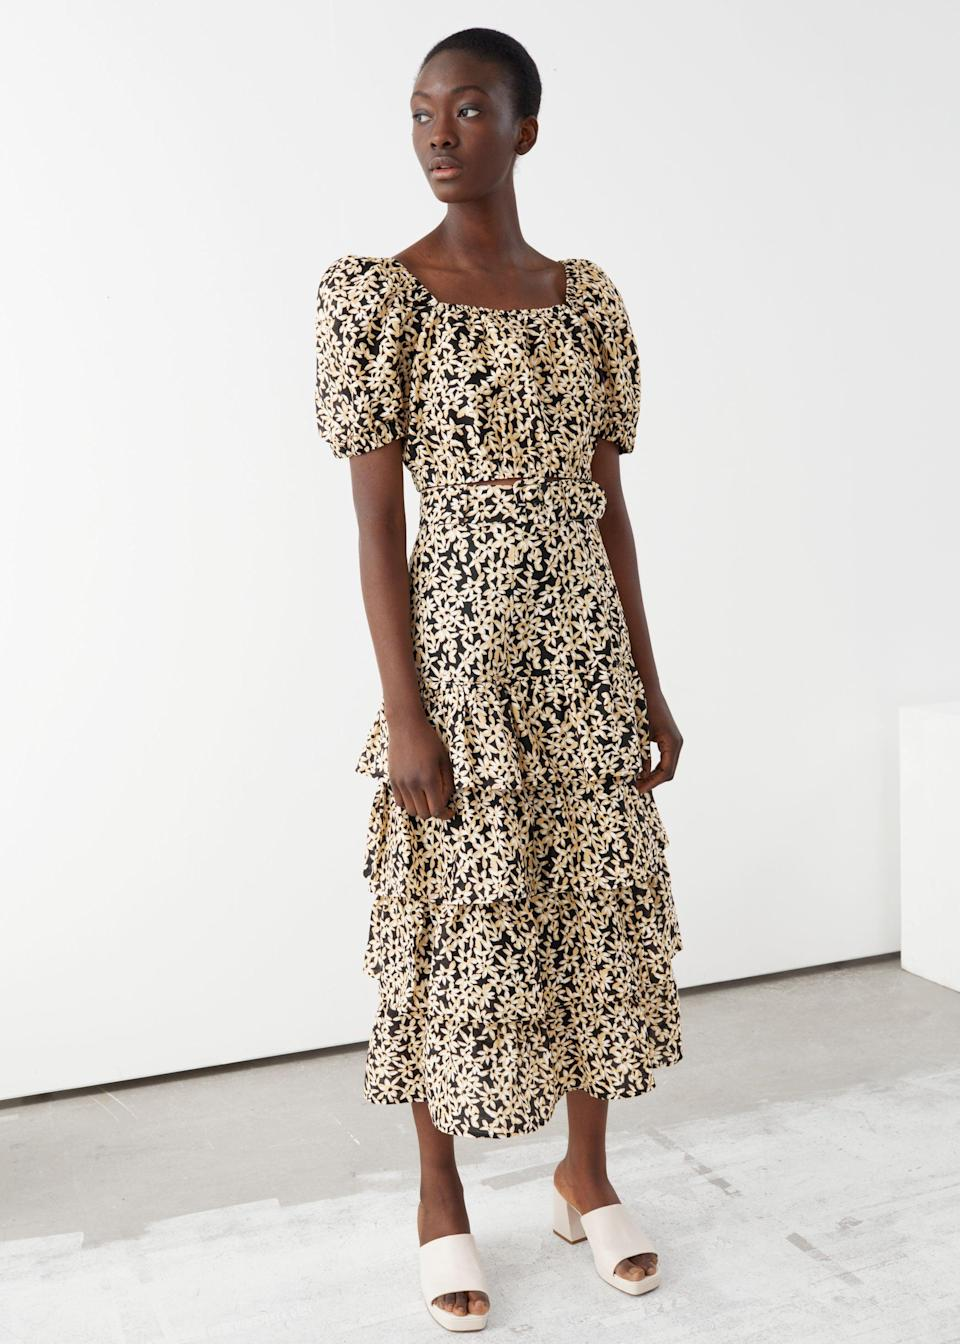 """<br> <br> <strong>& Other Stories</strong> Belted Floral Ruffle Midi Skirt, $, available at <a href=""""https://go.skimresources.com/?id=30283X879131&url=https%3A%2F%2Fwww.stories.com%2Fen_usd%2Fclothing%2Fdresses%2Fmidi-dresses%2Fproduct.belted-floral-ruffle-midi-skirt-black.0859814001.html"""" rel=""""nofollow noopener"""" target=""""_blank"""" data-ylk=""""slk:& Other Stories"""" class=""""link rapid-noclick-resp"""">& Other Stories</a>"""